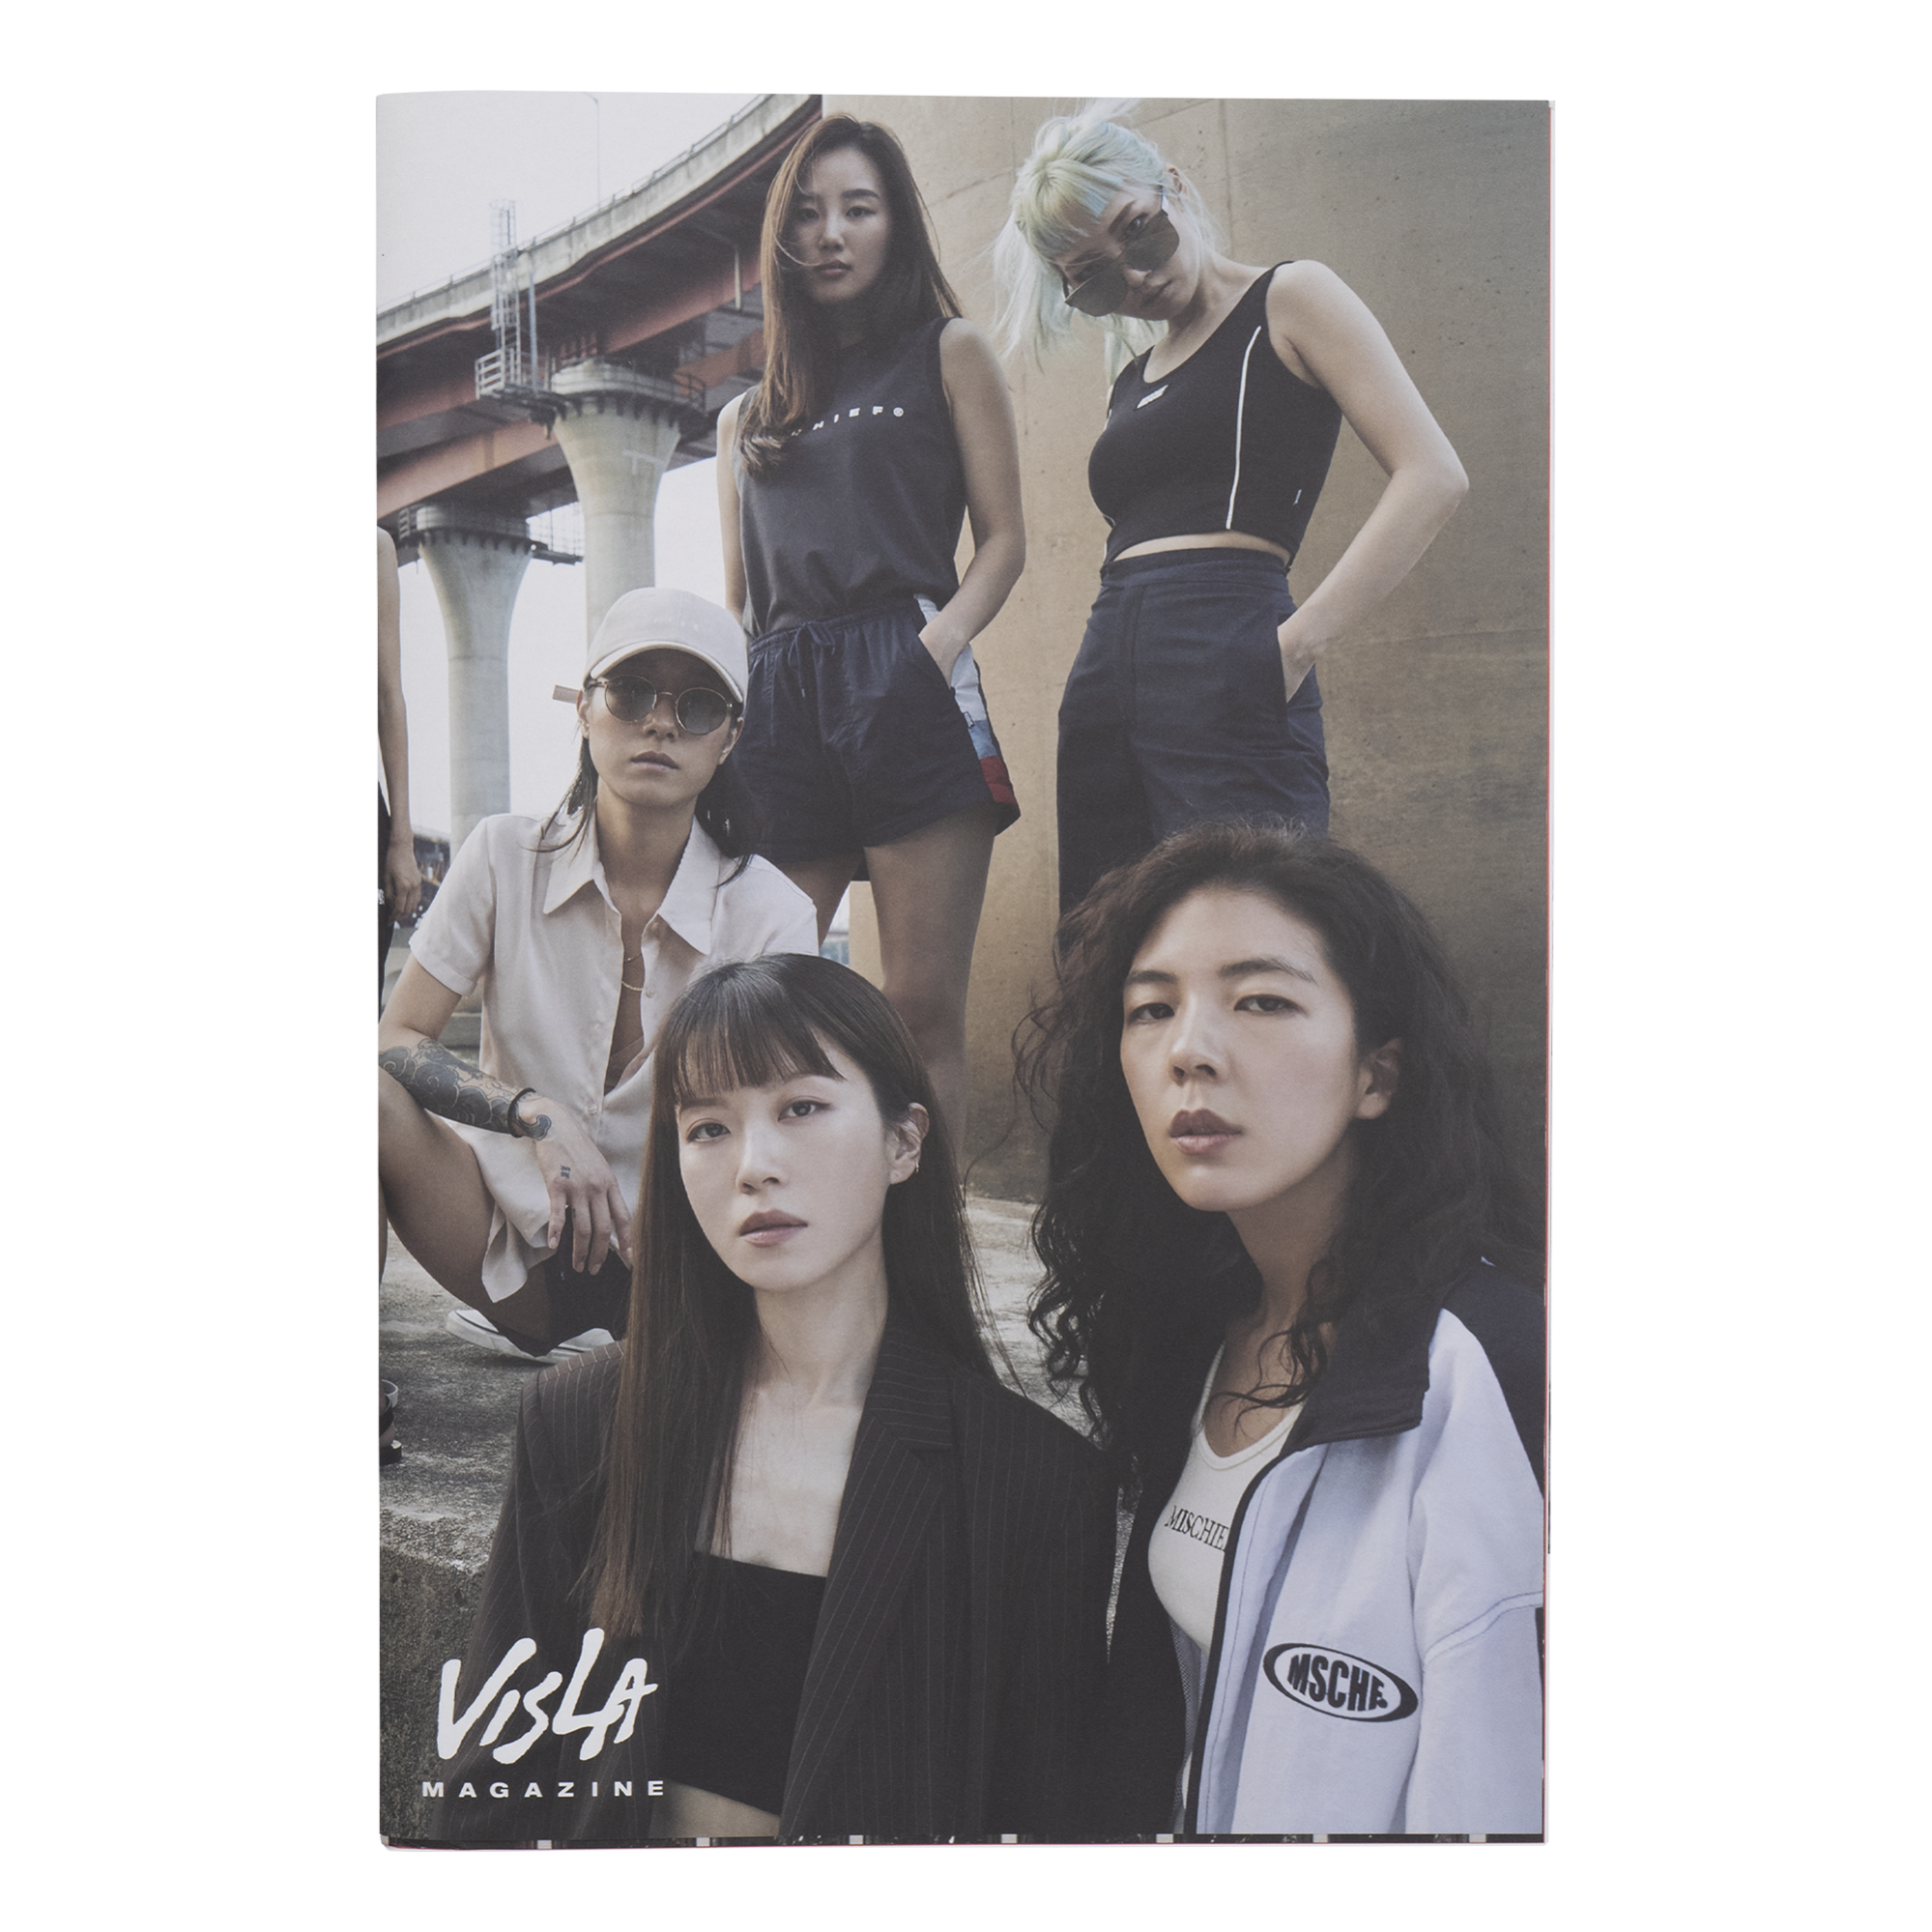 VISLA MAGAZINE ISSUE 1 2017/JUL